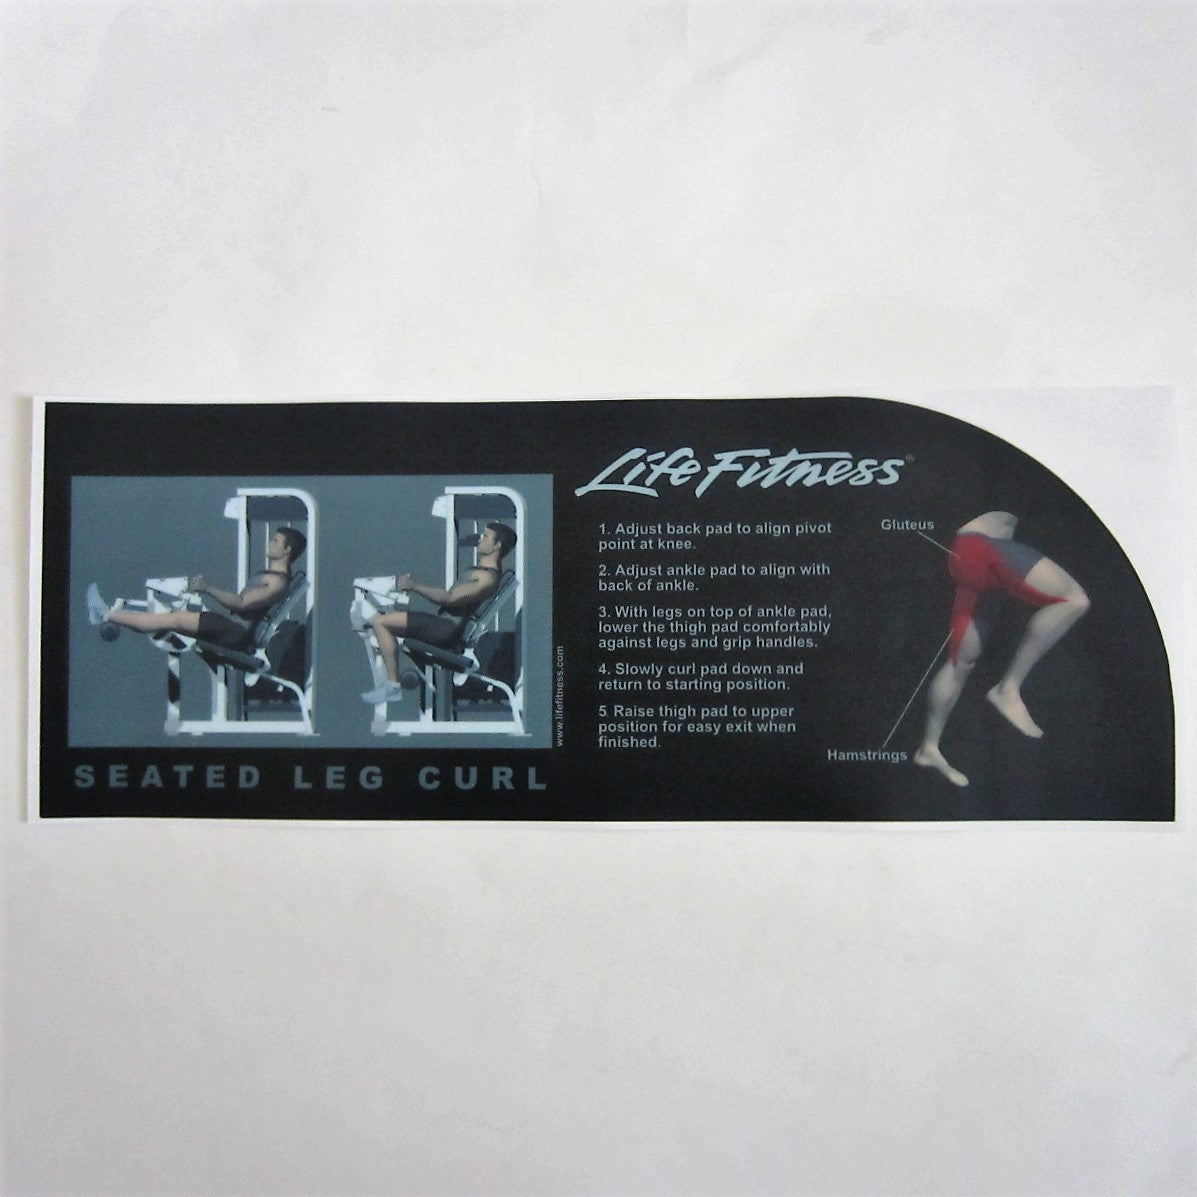 Pro 2 Seated Leg Curl